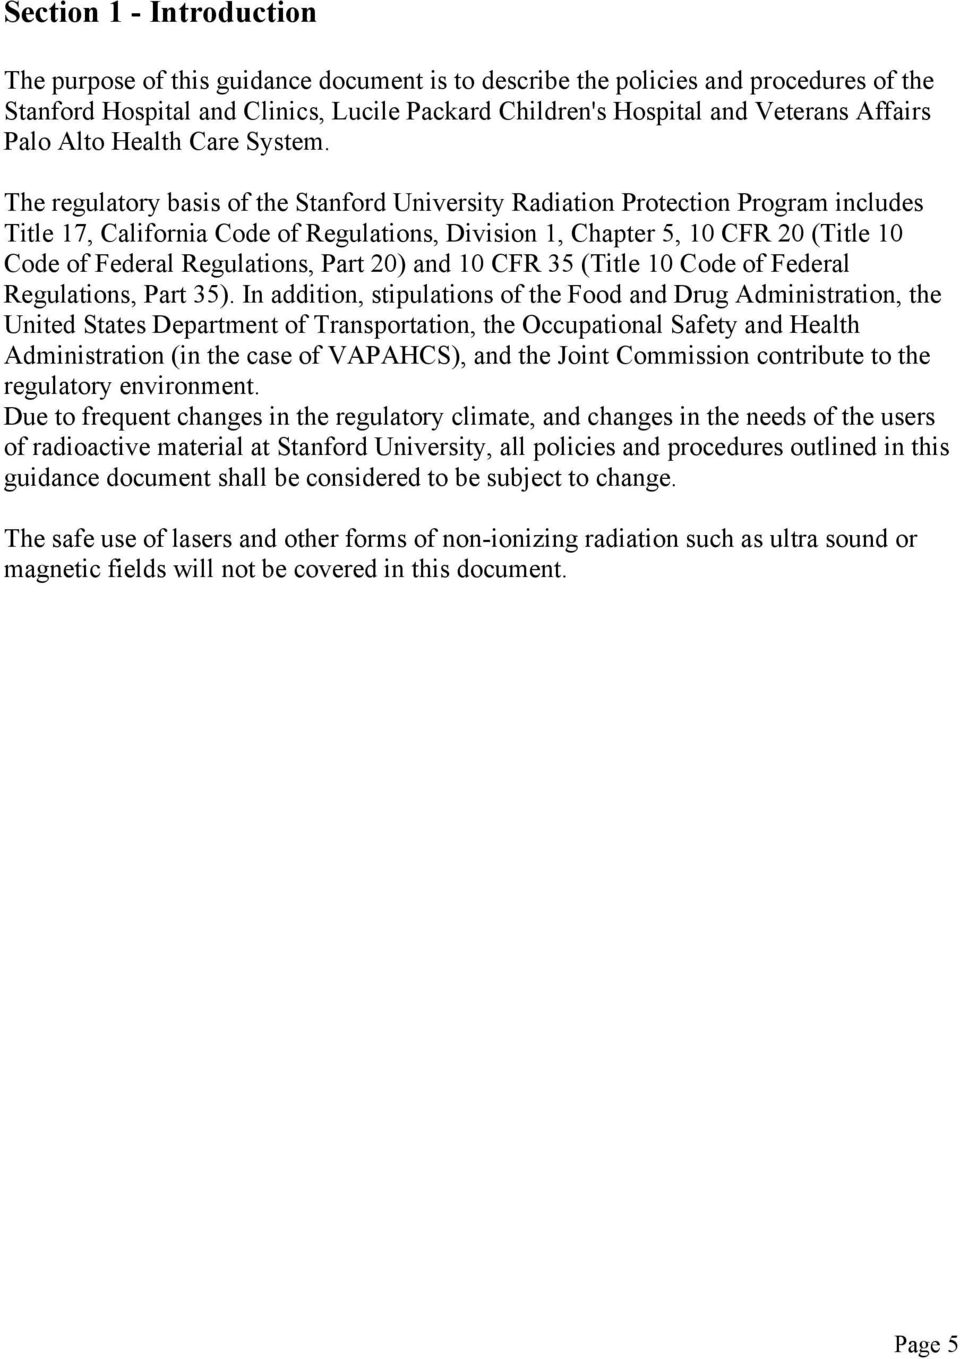 The regulatory basis of the Stanford University Radiation Protection Program includes Title 17, California Code of Regulations, Division 1, Chapter 5, 10 CFR 20 (Title 10 Code of Federal Regulations,